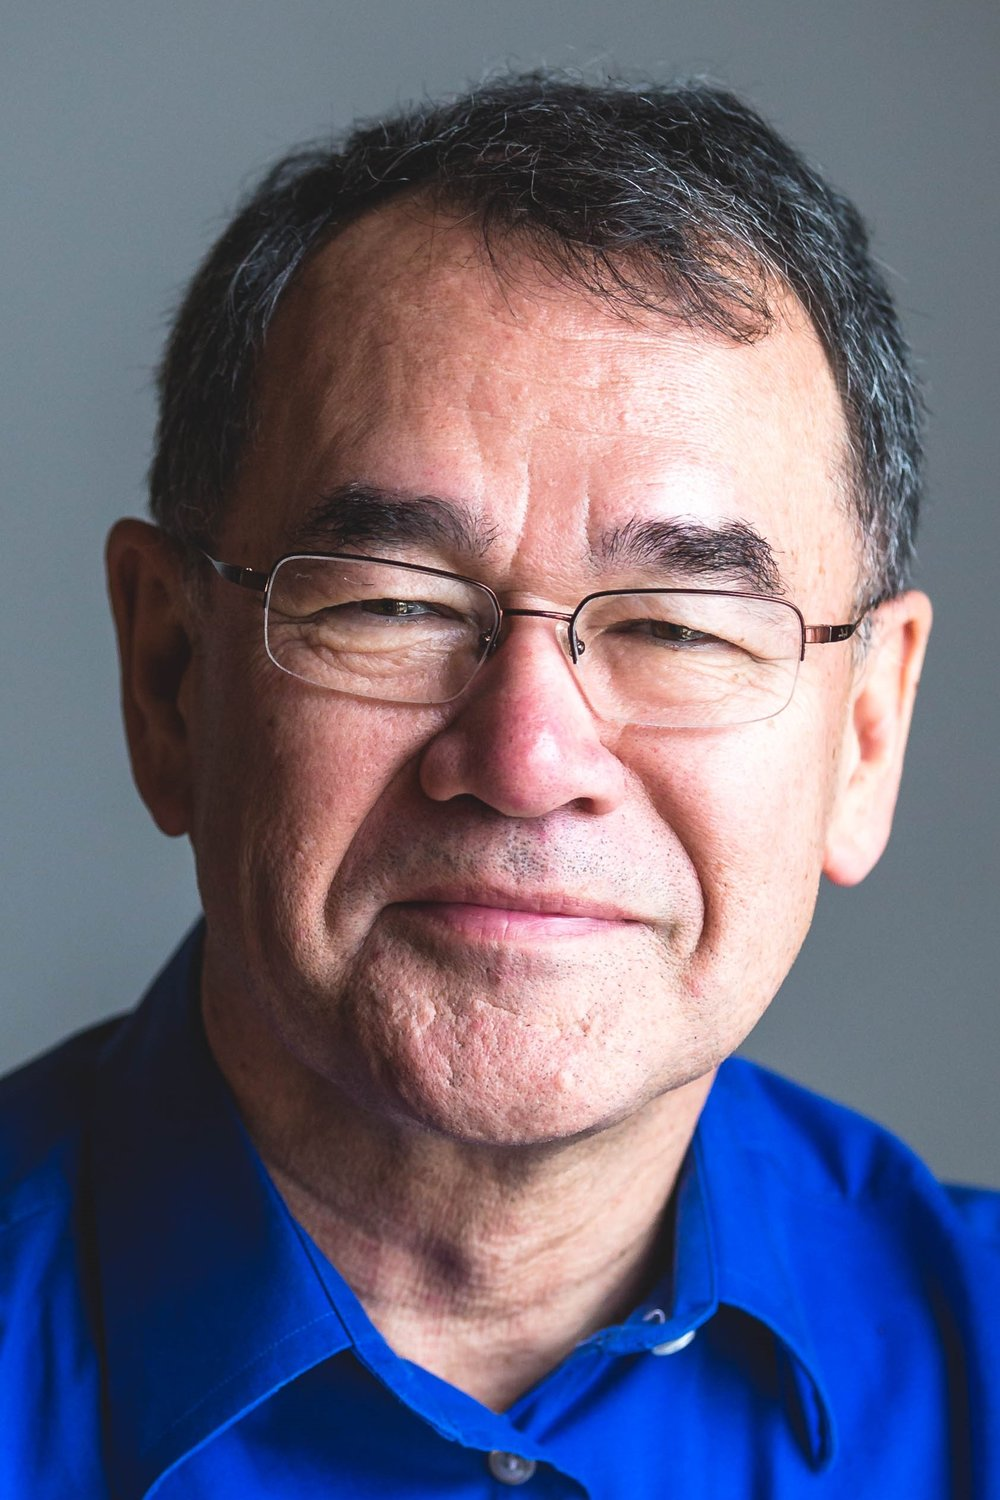 Murray Armstrong Reg. Clinical Social Worker  Armstrongs' Counselling  armstrongscounselling.com  10027 – 166 Street Edmonton T5P 4Y1 780 – 444 - 4399  dmarm@telus.net